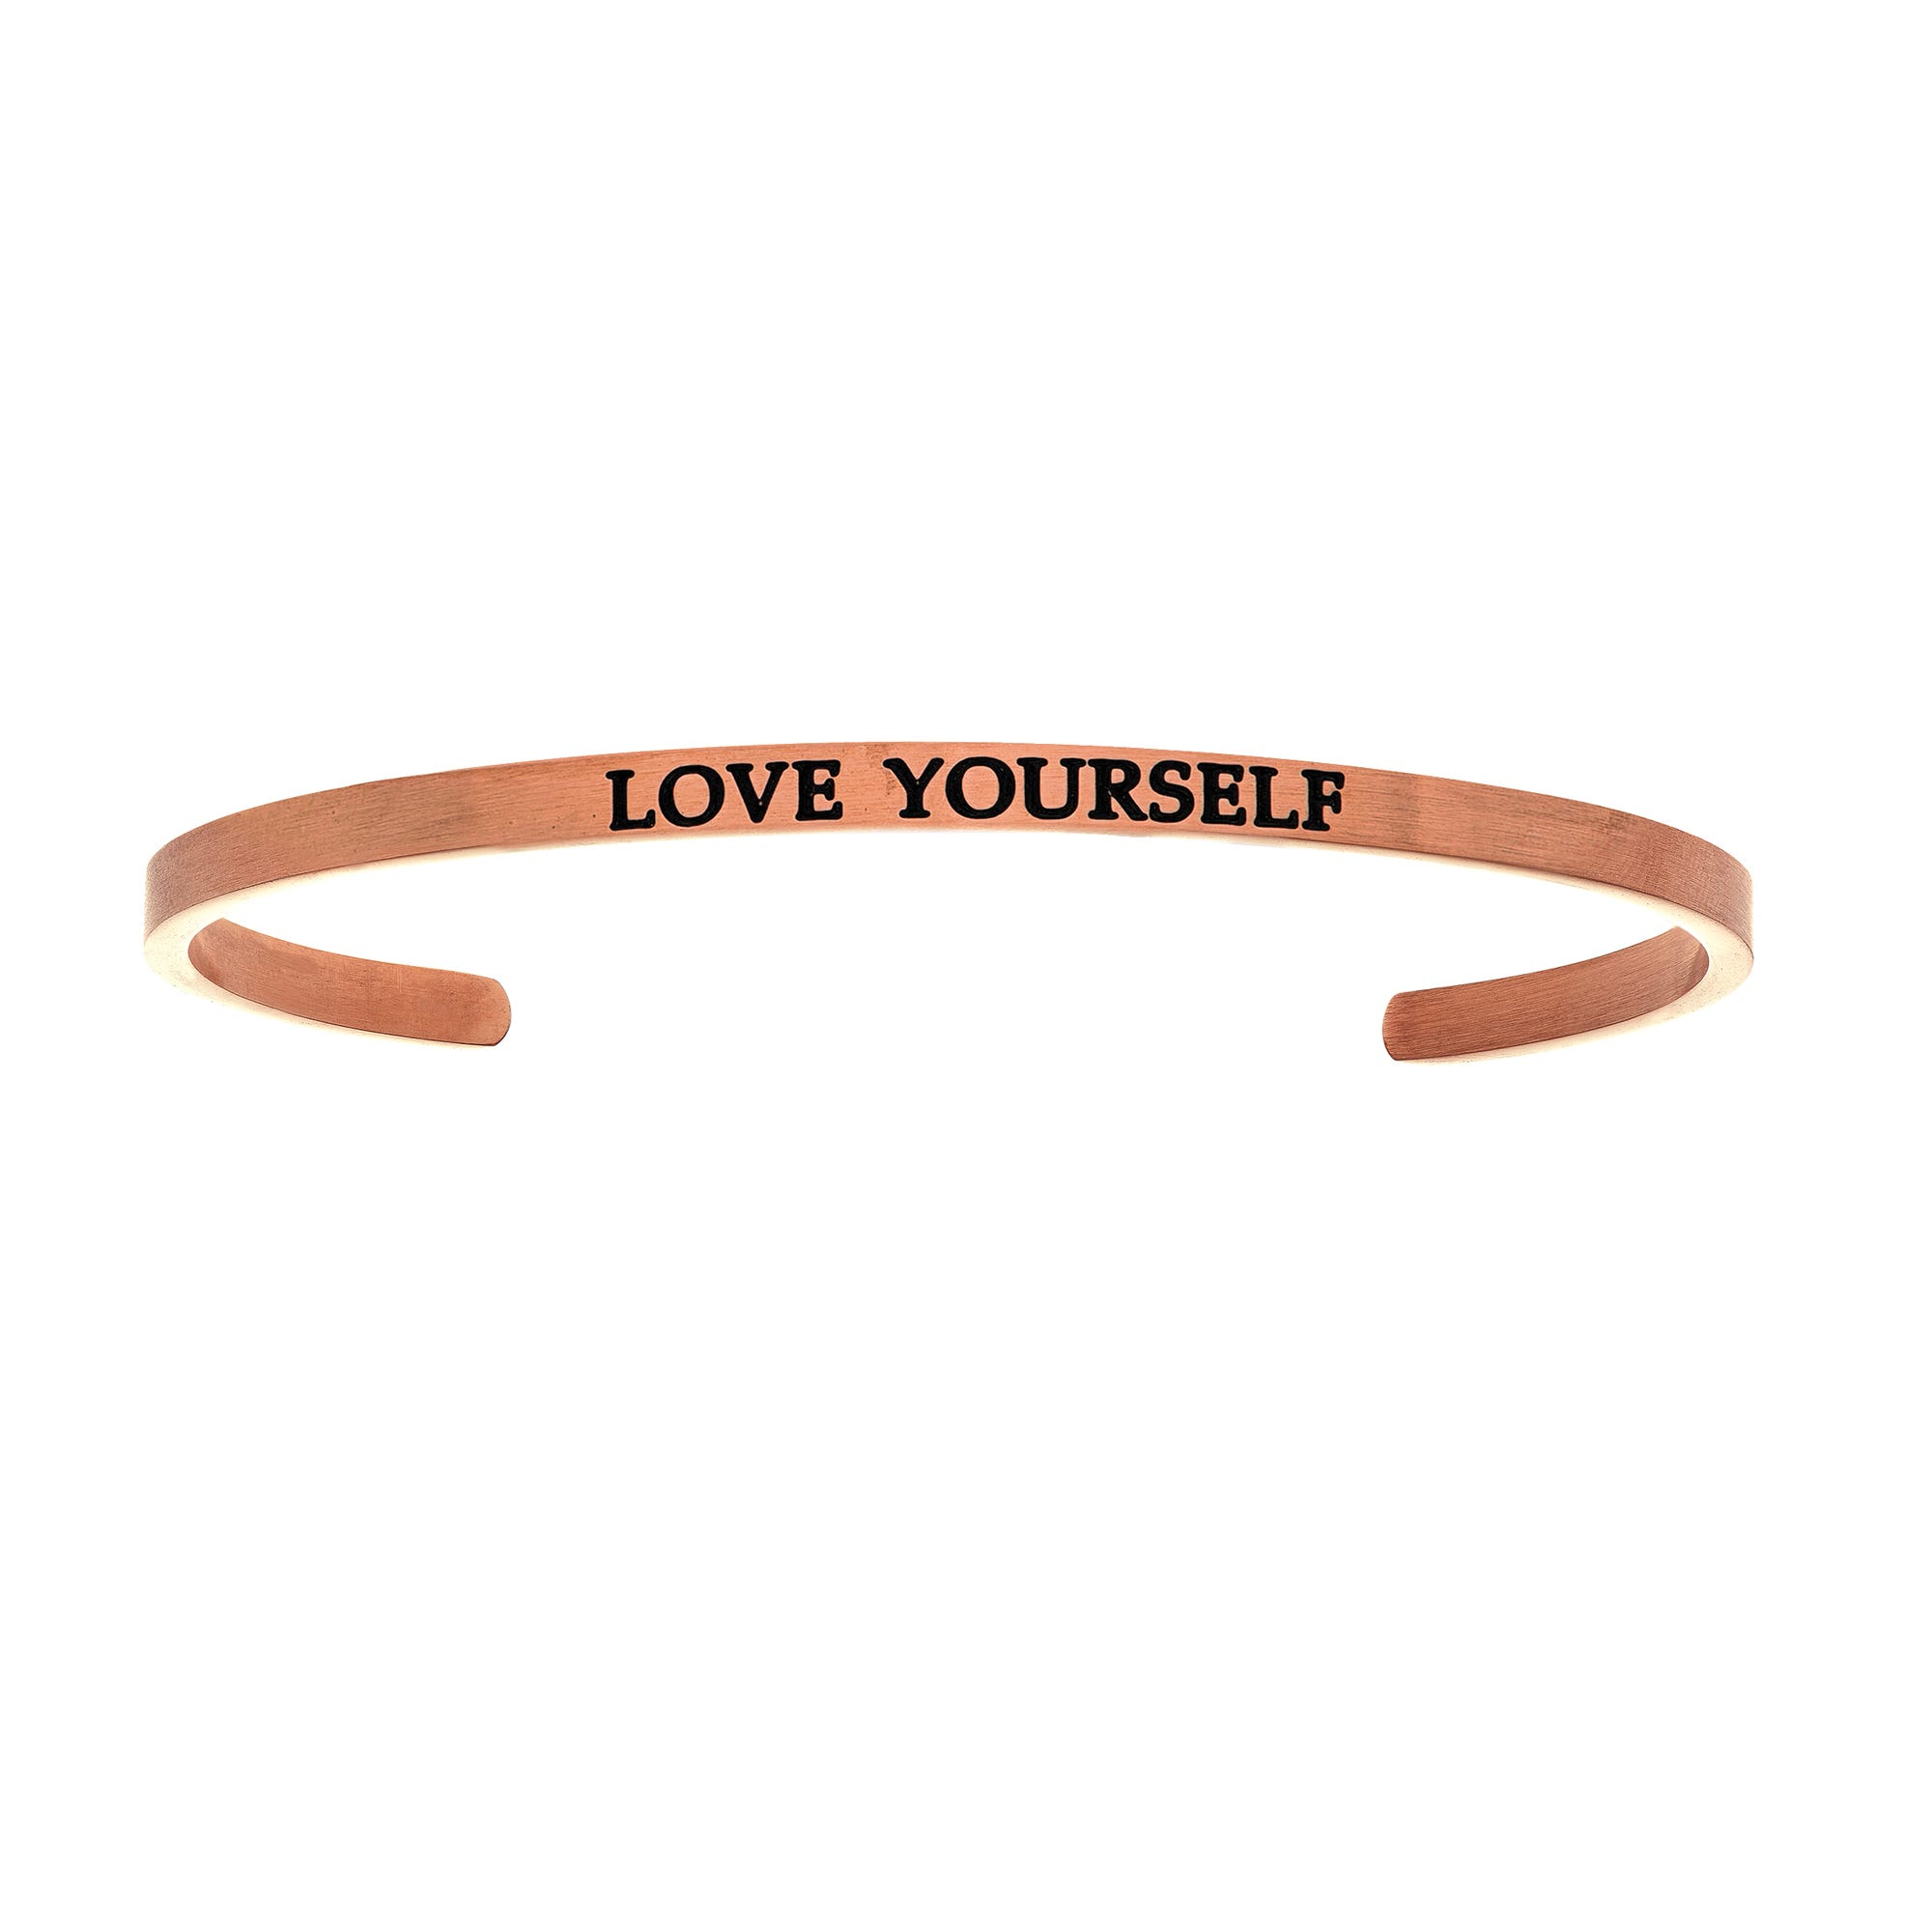 Love Yourself. Intuitions Cuff Bracelet in Pink Stainless Steel